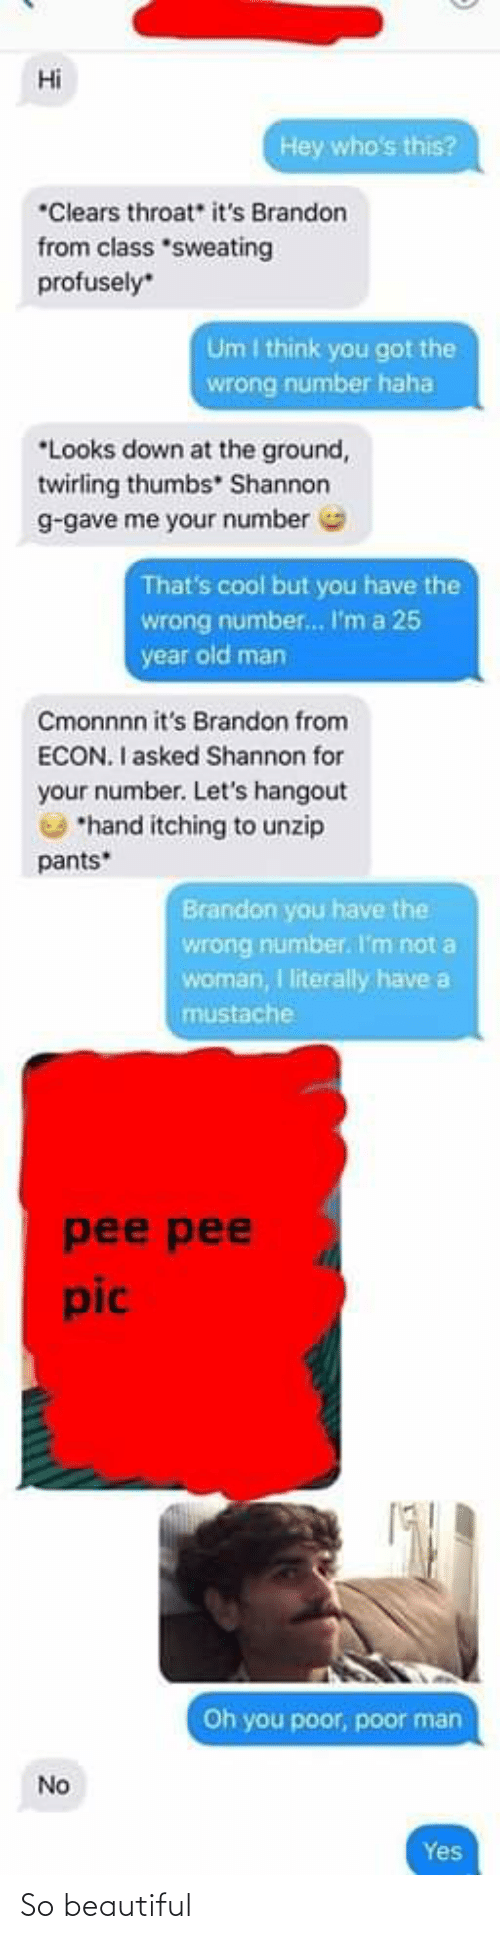 """Beautiful, Old Man, and Cool: Hi  Hey who's this?  *Clears throat"""" it's Brandon  from class *sweating  profusely  Um I think you got the  wrong number haha  *Looks down at the ground,  twirling thumbs"""" Shannon  g-gave me your number  That's cool but you have the  wrong number. I'm a 25  year old man  Cmonnnn it's Brandon from  ECON. I asked Shannon for  your number. Let's hangout  *hand itching to unzip  pants*  Brandon you have the  wrong number. I'm not a  woman, I literally have a  mustache  pee pee  pic  Oh you poor, poor man  No  Yes So beautiful"""